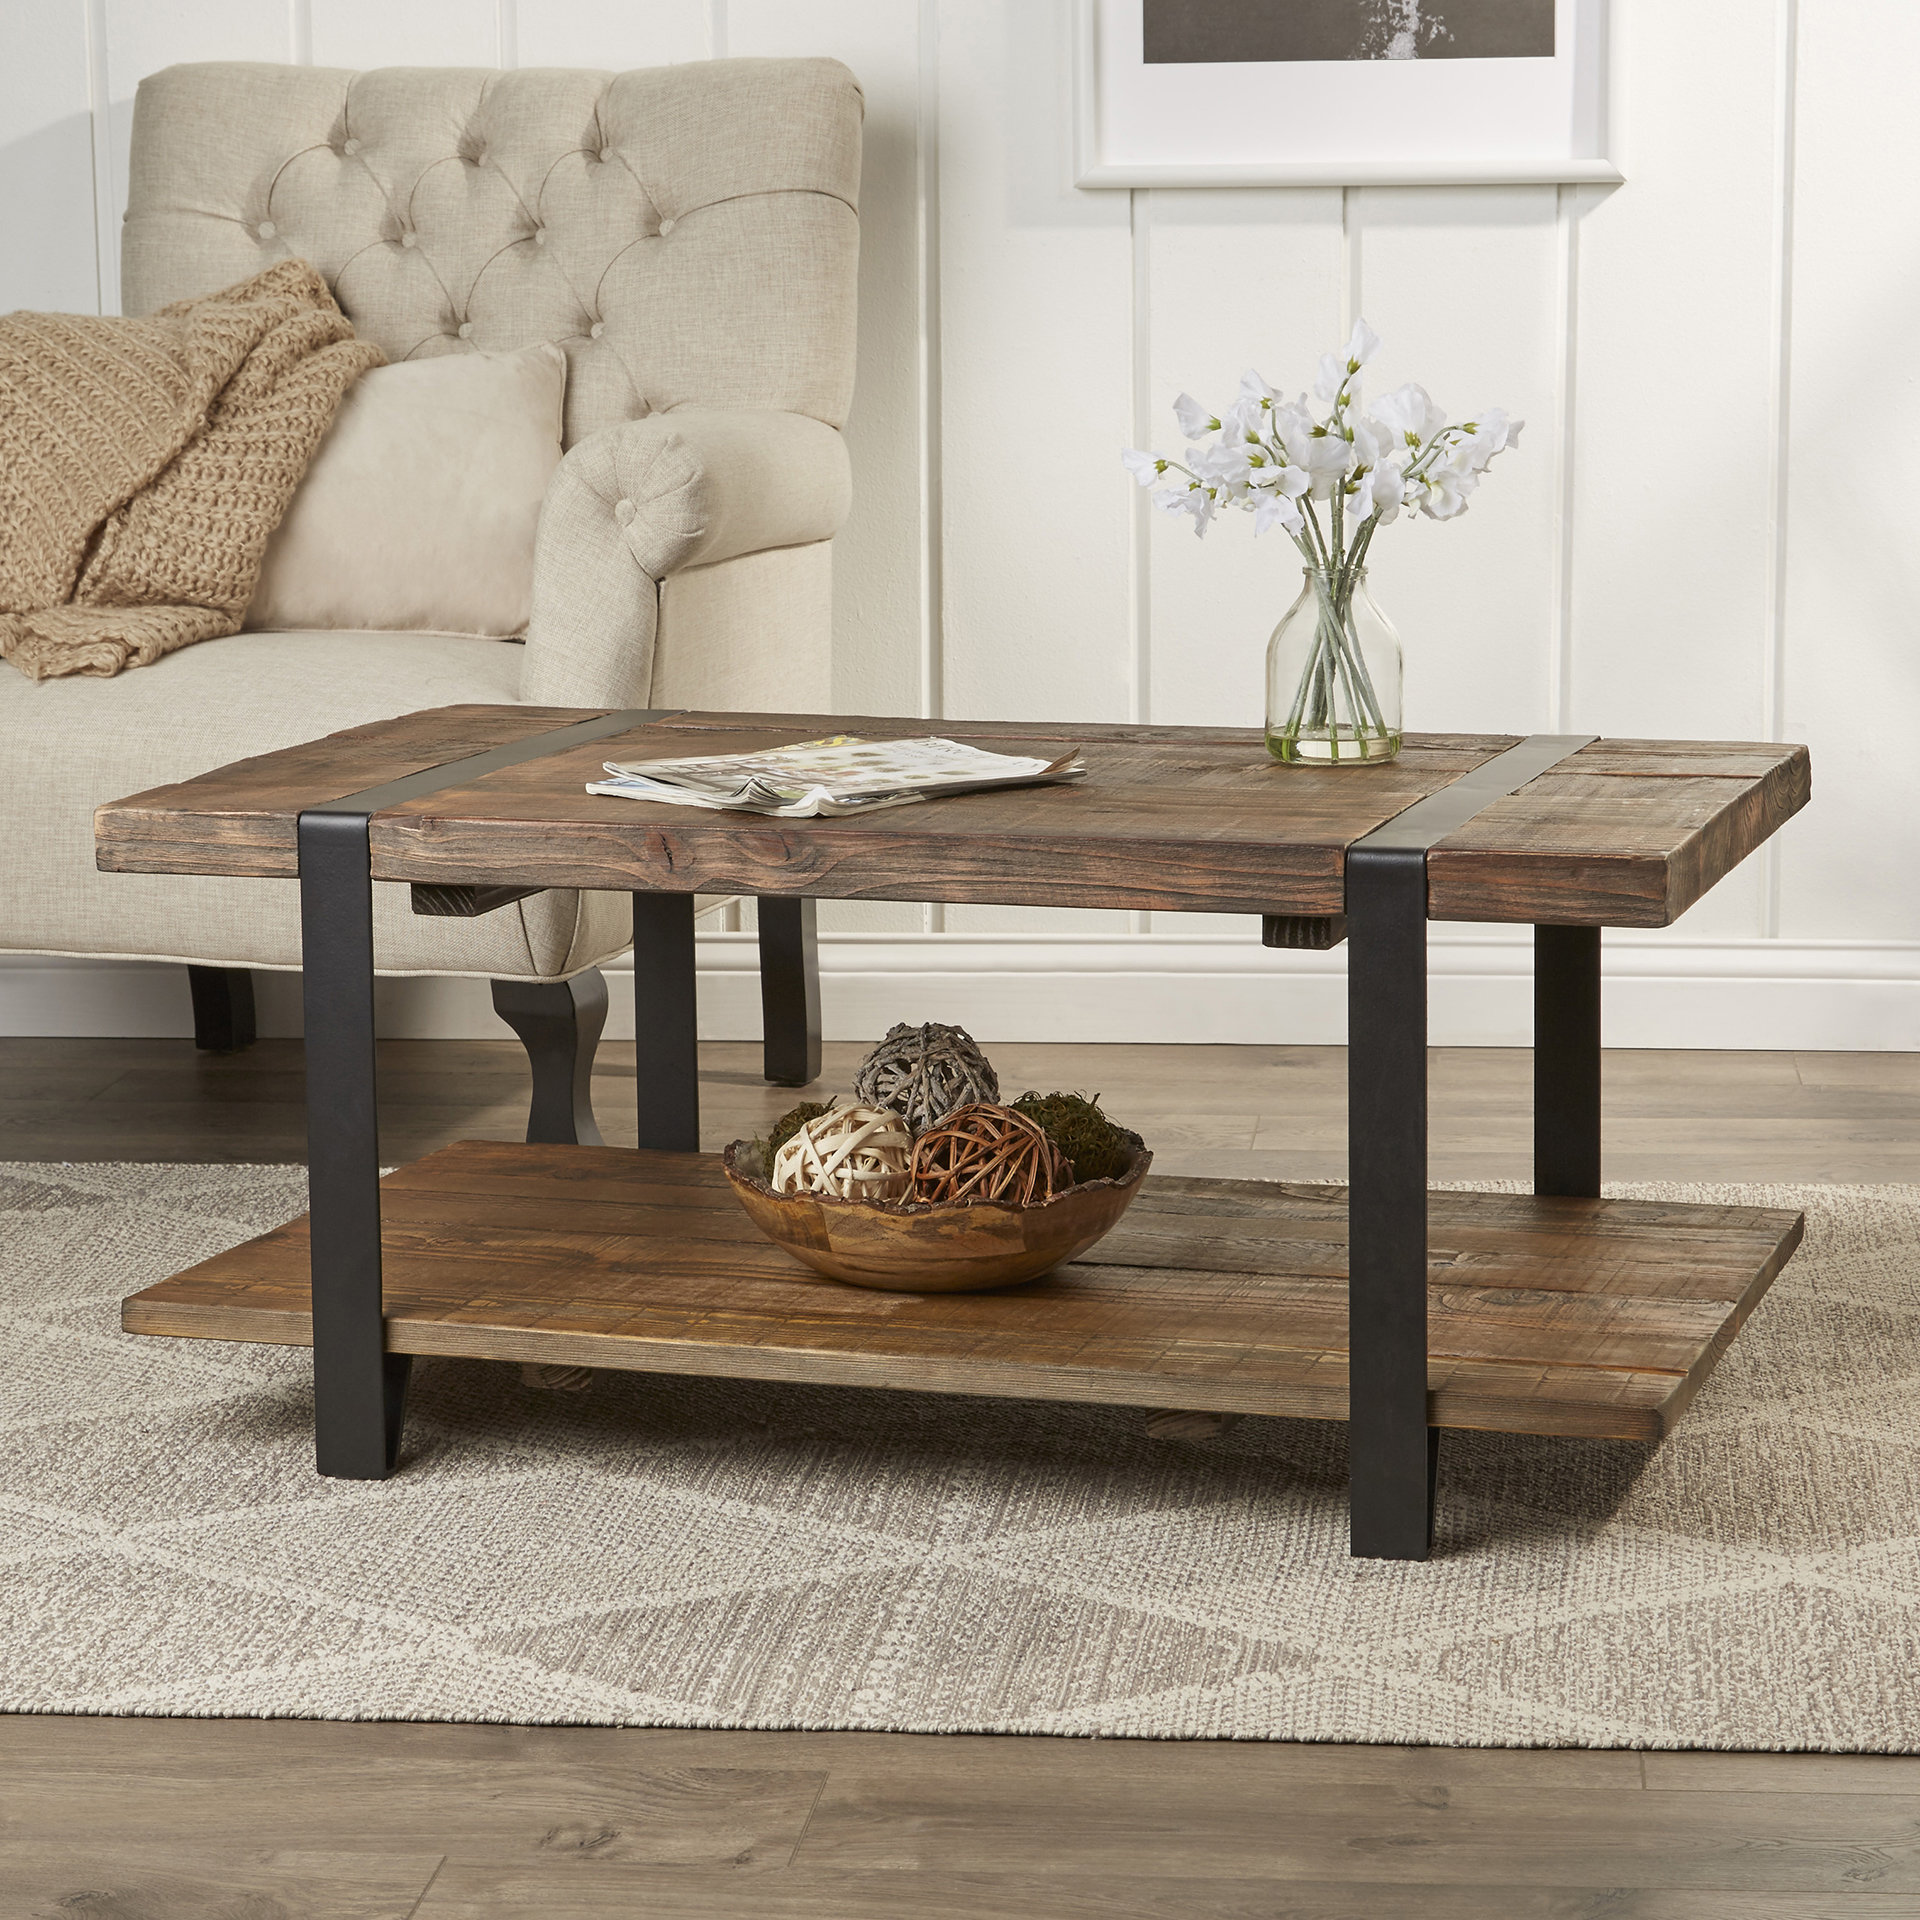 wood coffee table 42 MGKHVRG